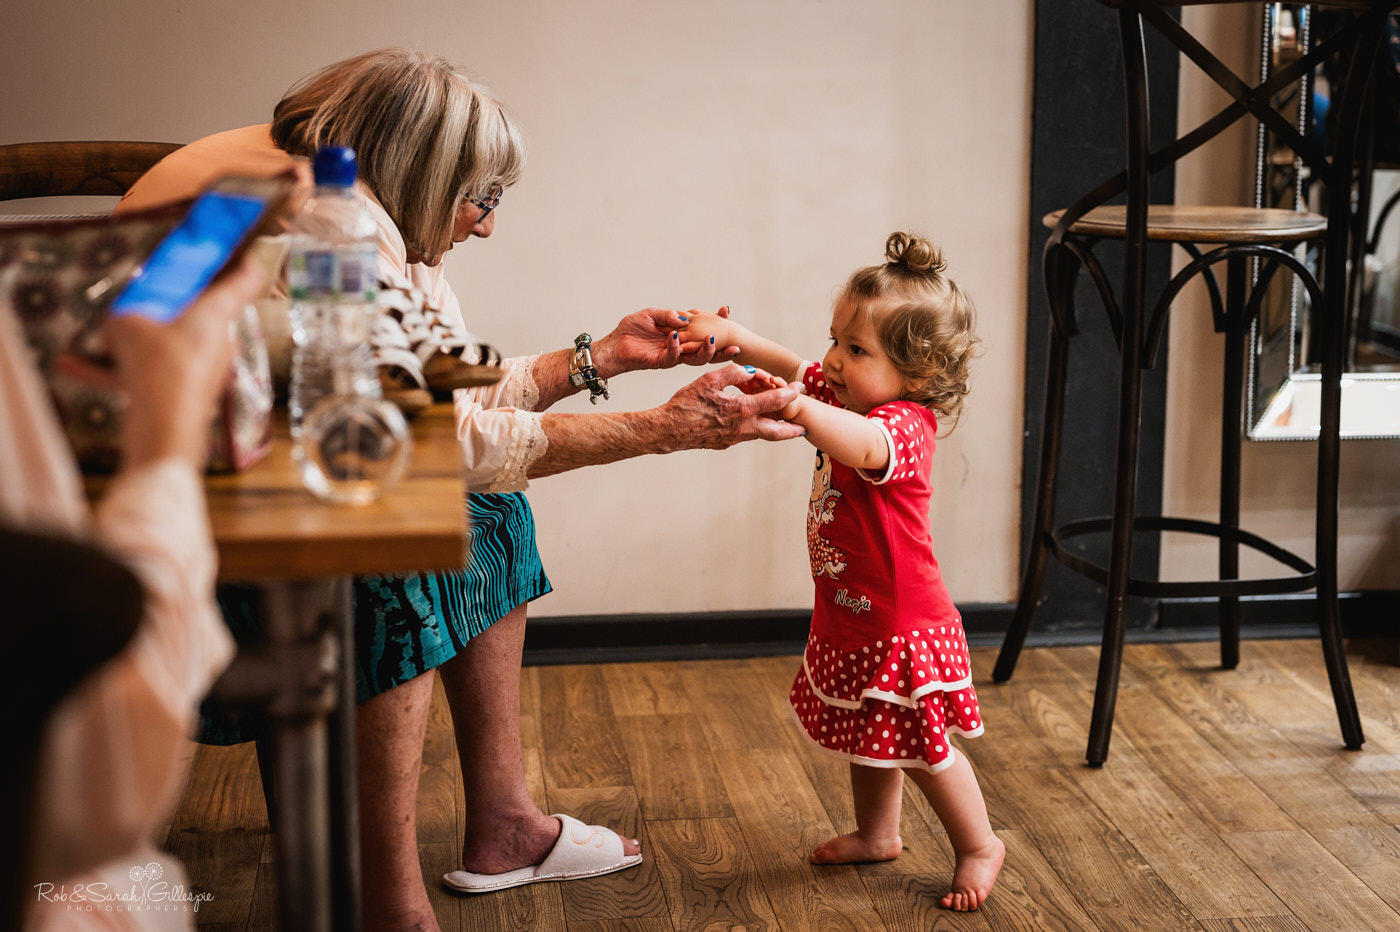 Bride's grandmother plays with toddley while getting ready for wedding